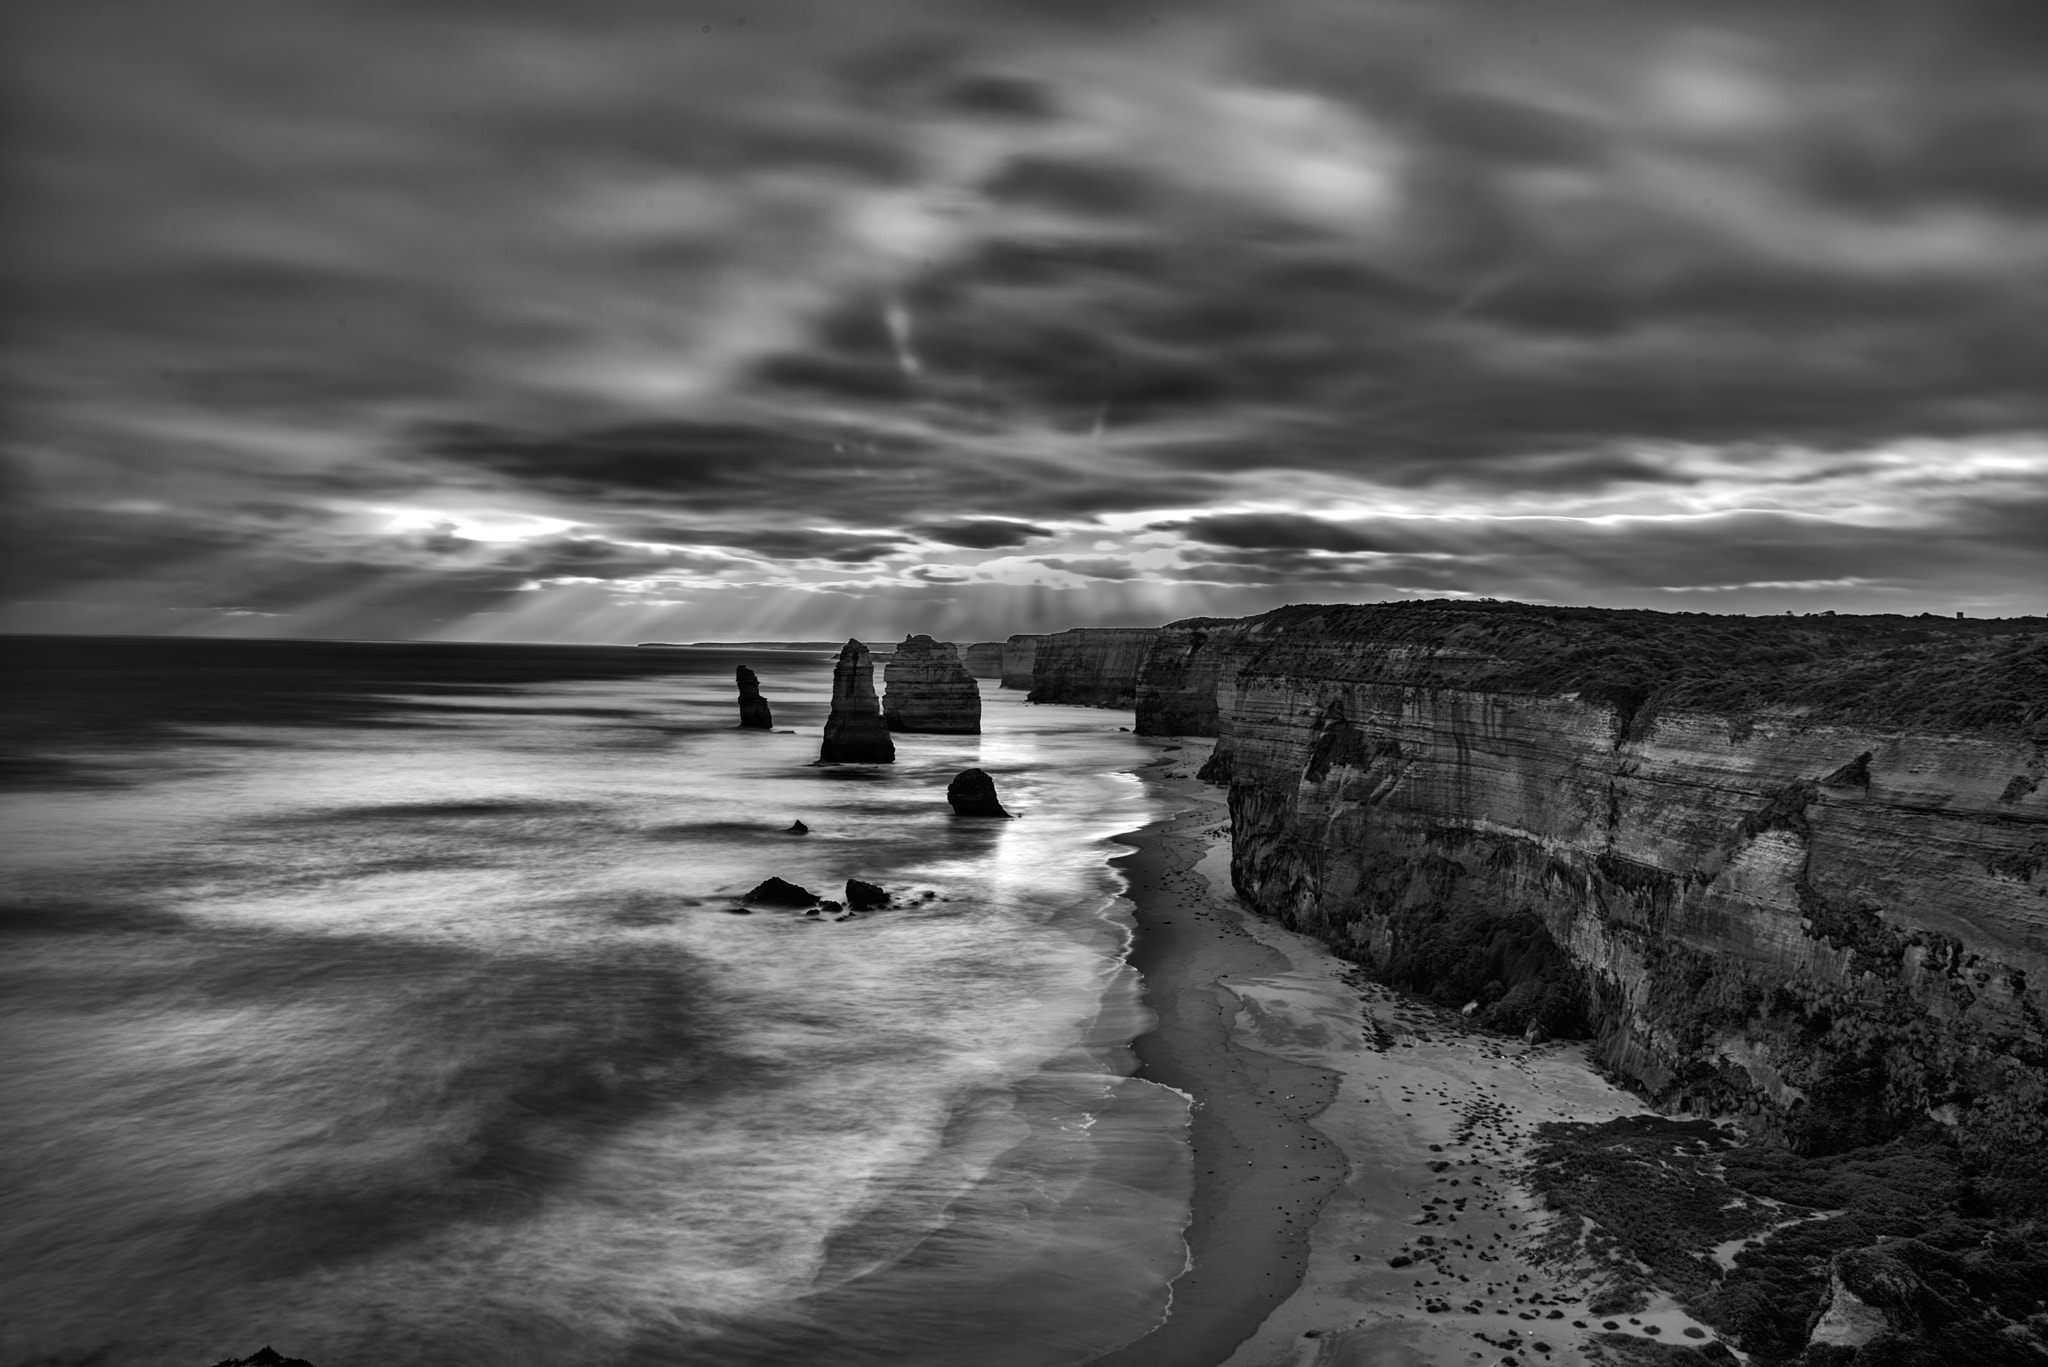 Photograph 12 Apostles: Standstill by Bipphy Kath on 500px